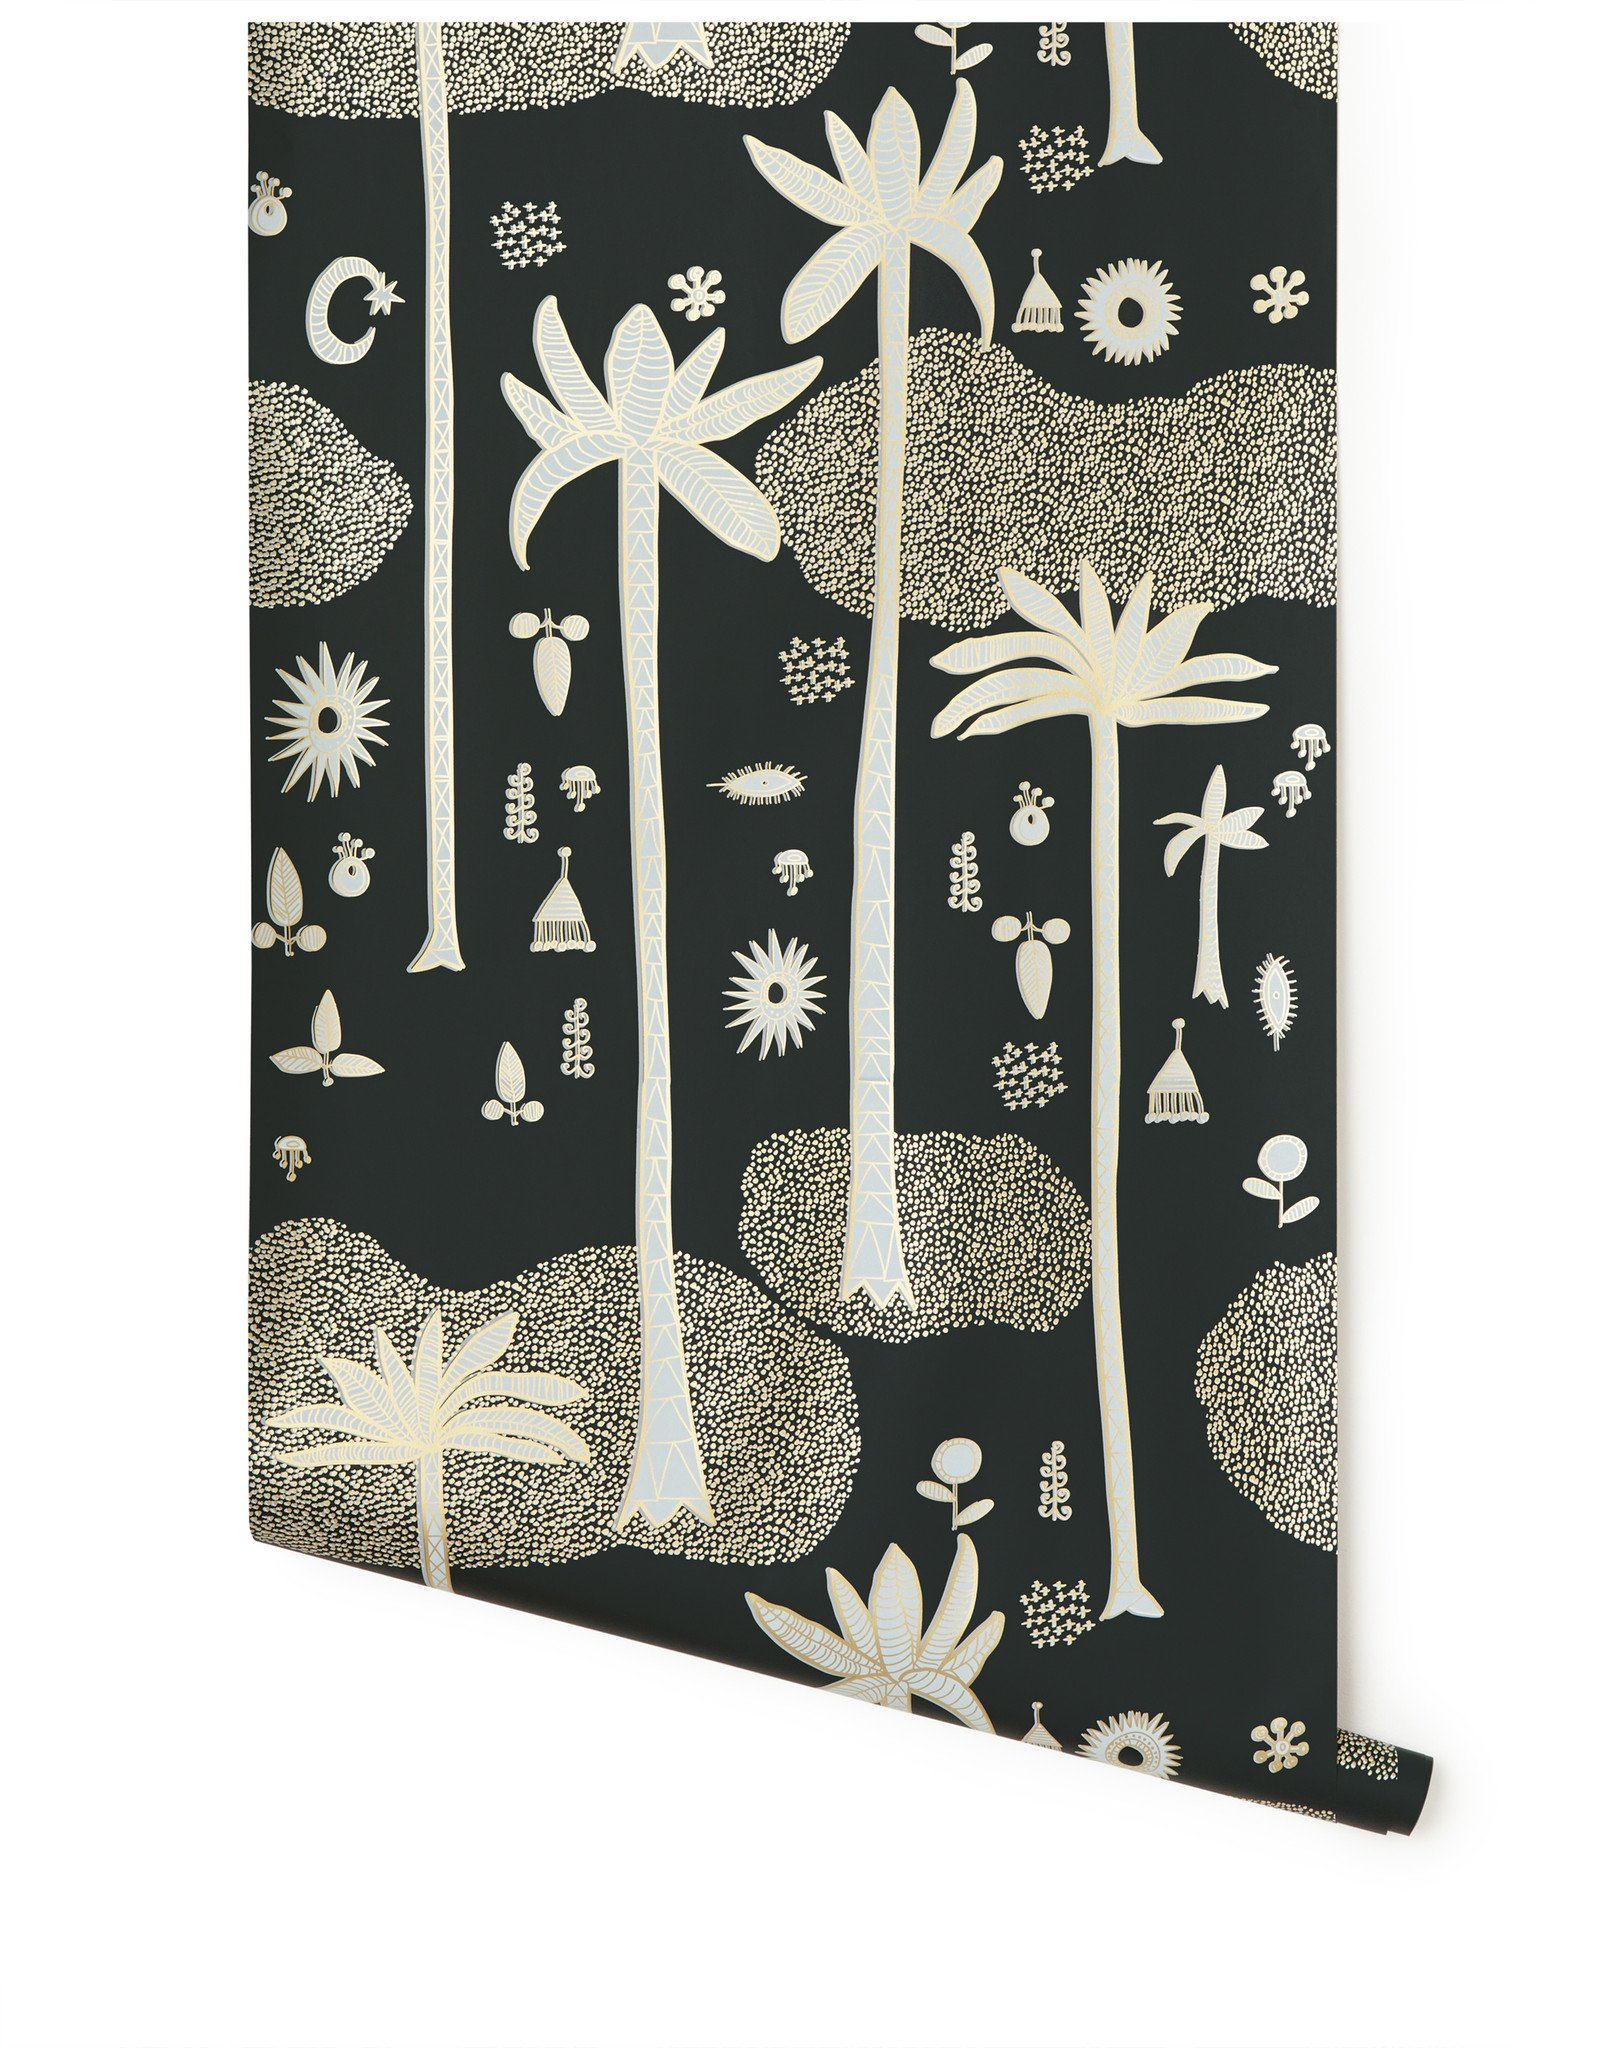 Cosmic Desert Justina Blakeney Jungalow Palm Tree Wallpaper Hygge & West